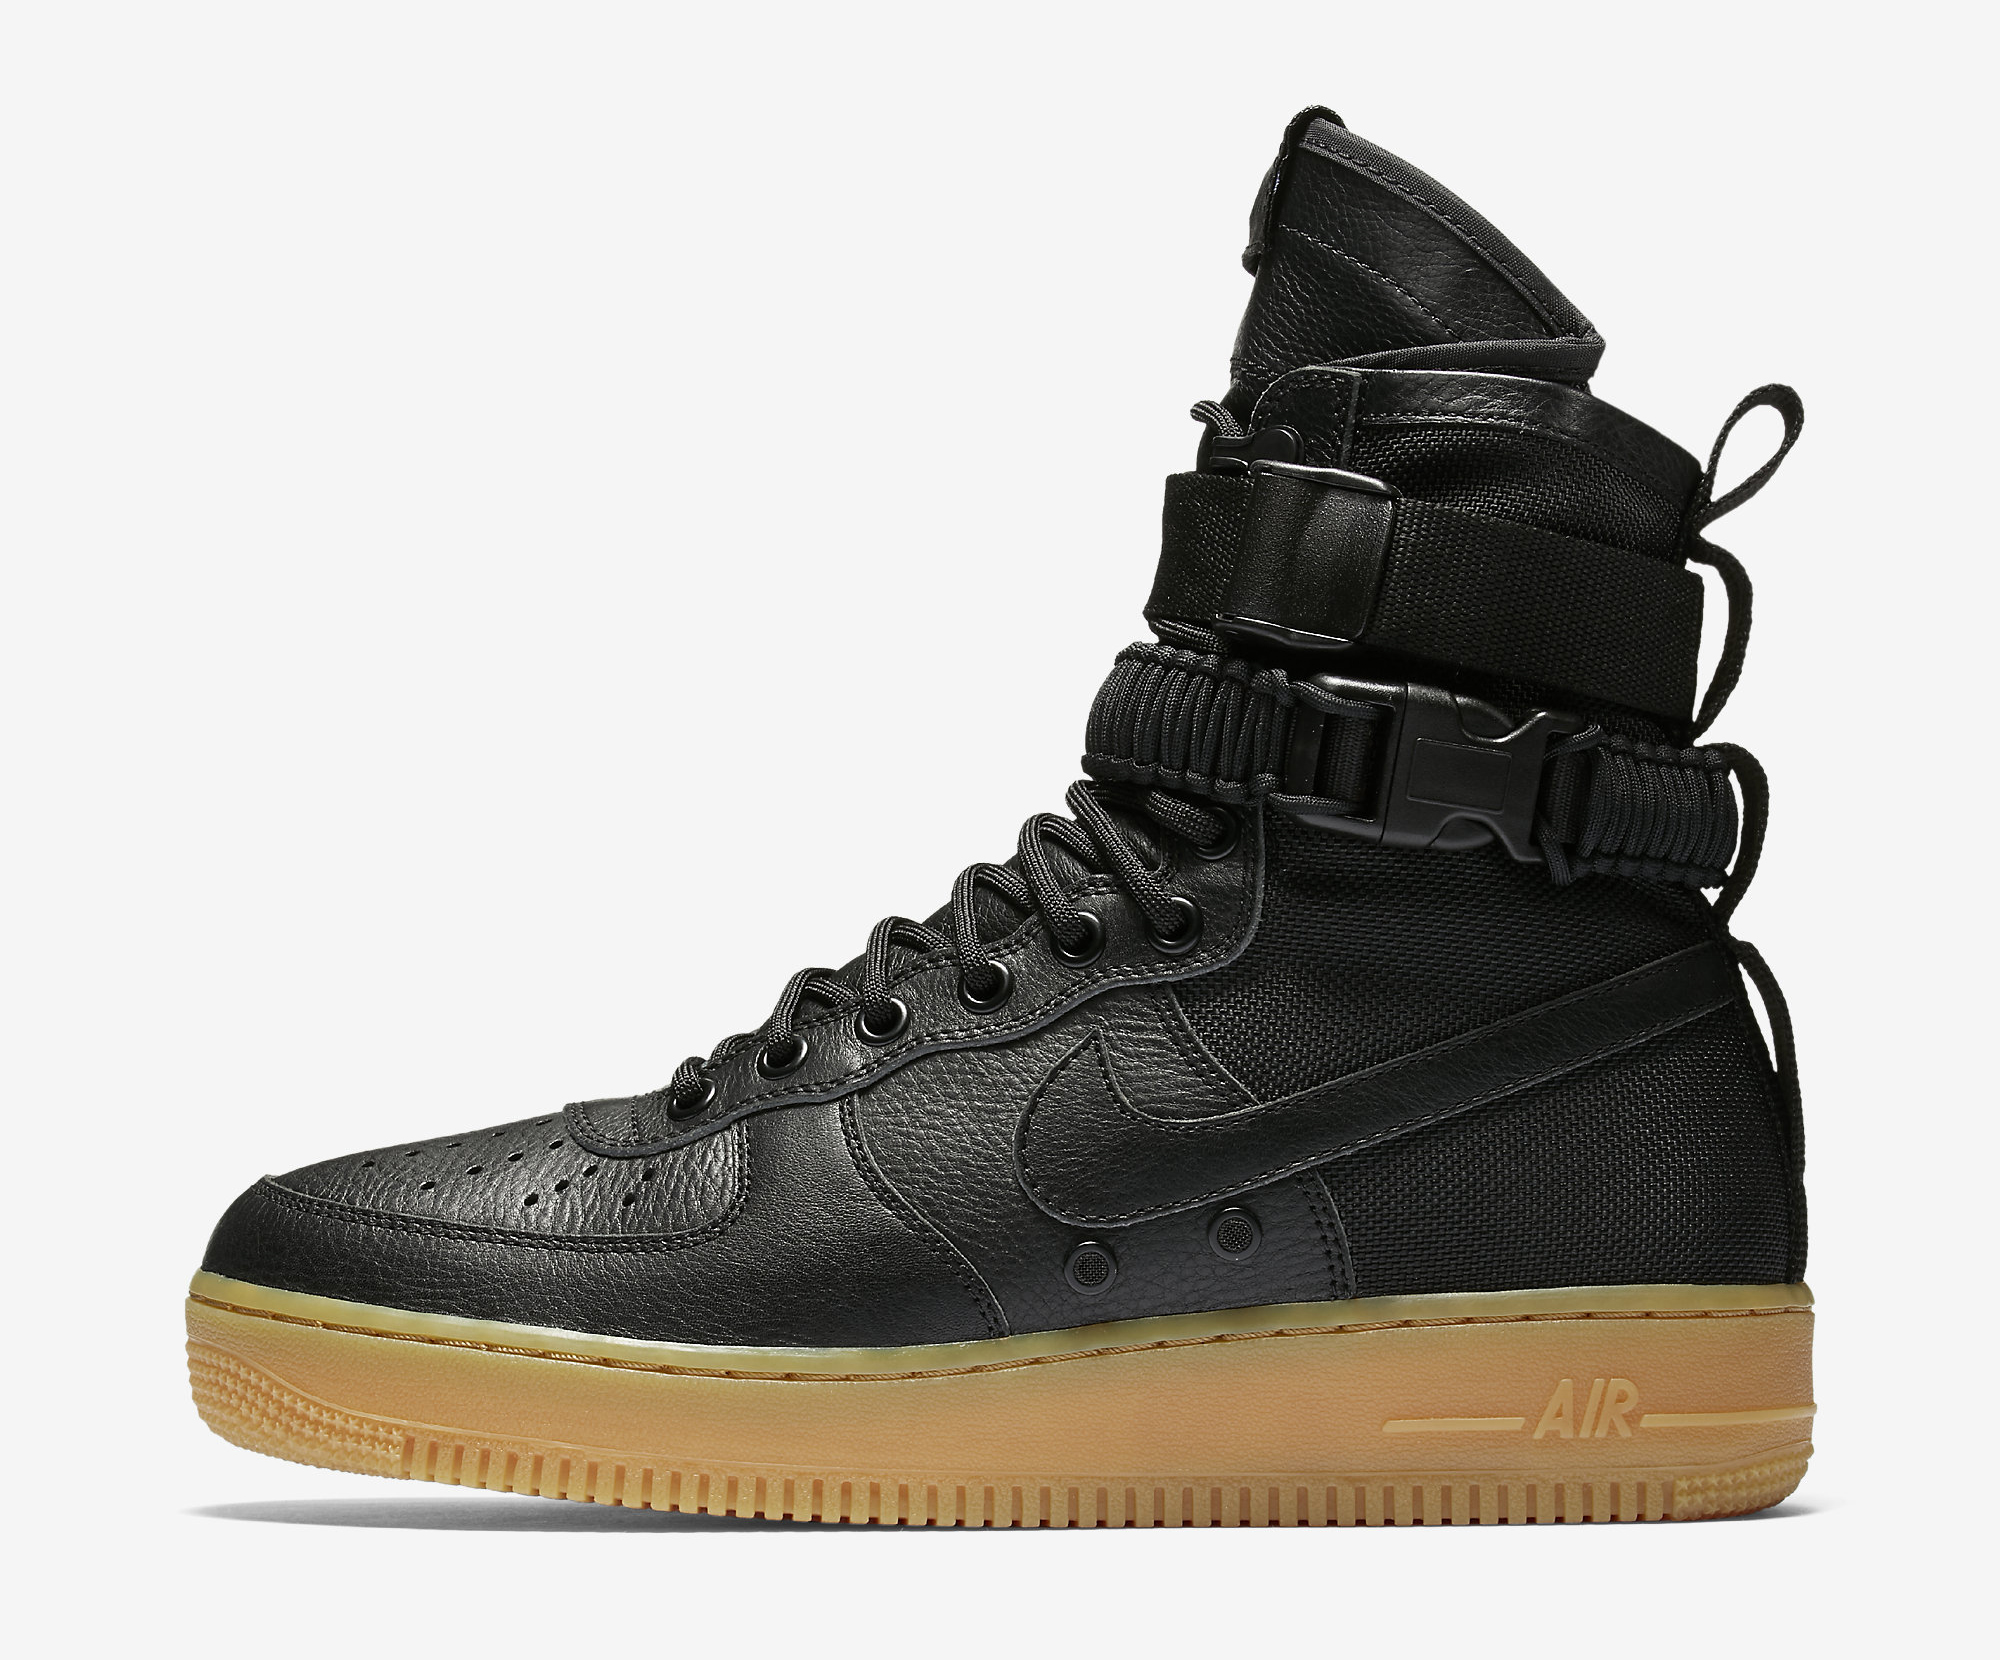 8ba5b9e0a3de0 Nike SFAF1 Black Gum Image via Nike Nike SFAF1 Faded Olive Gum Light Brown